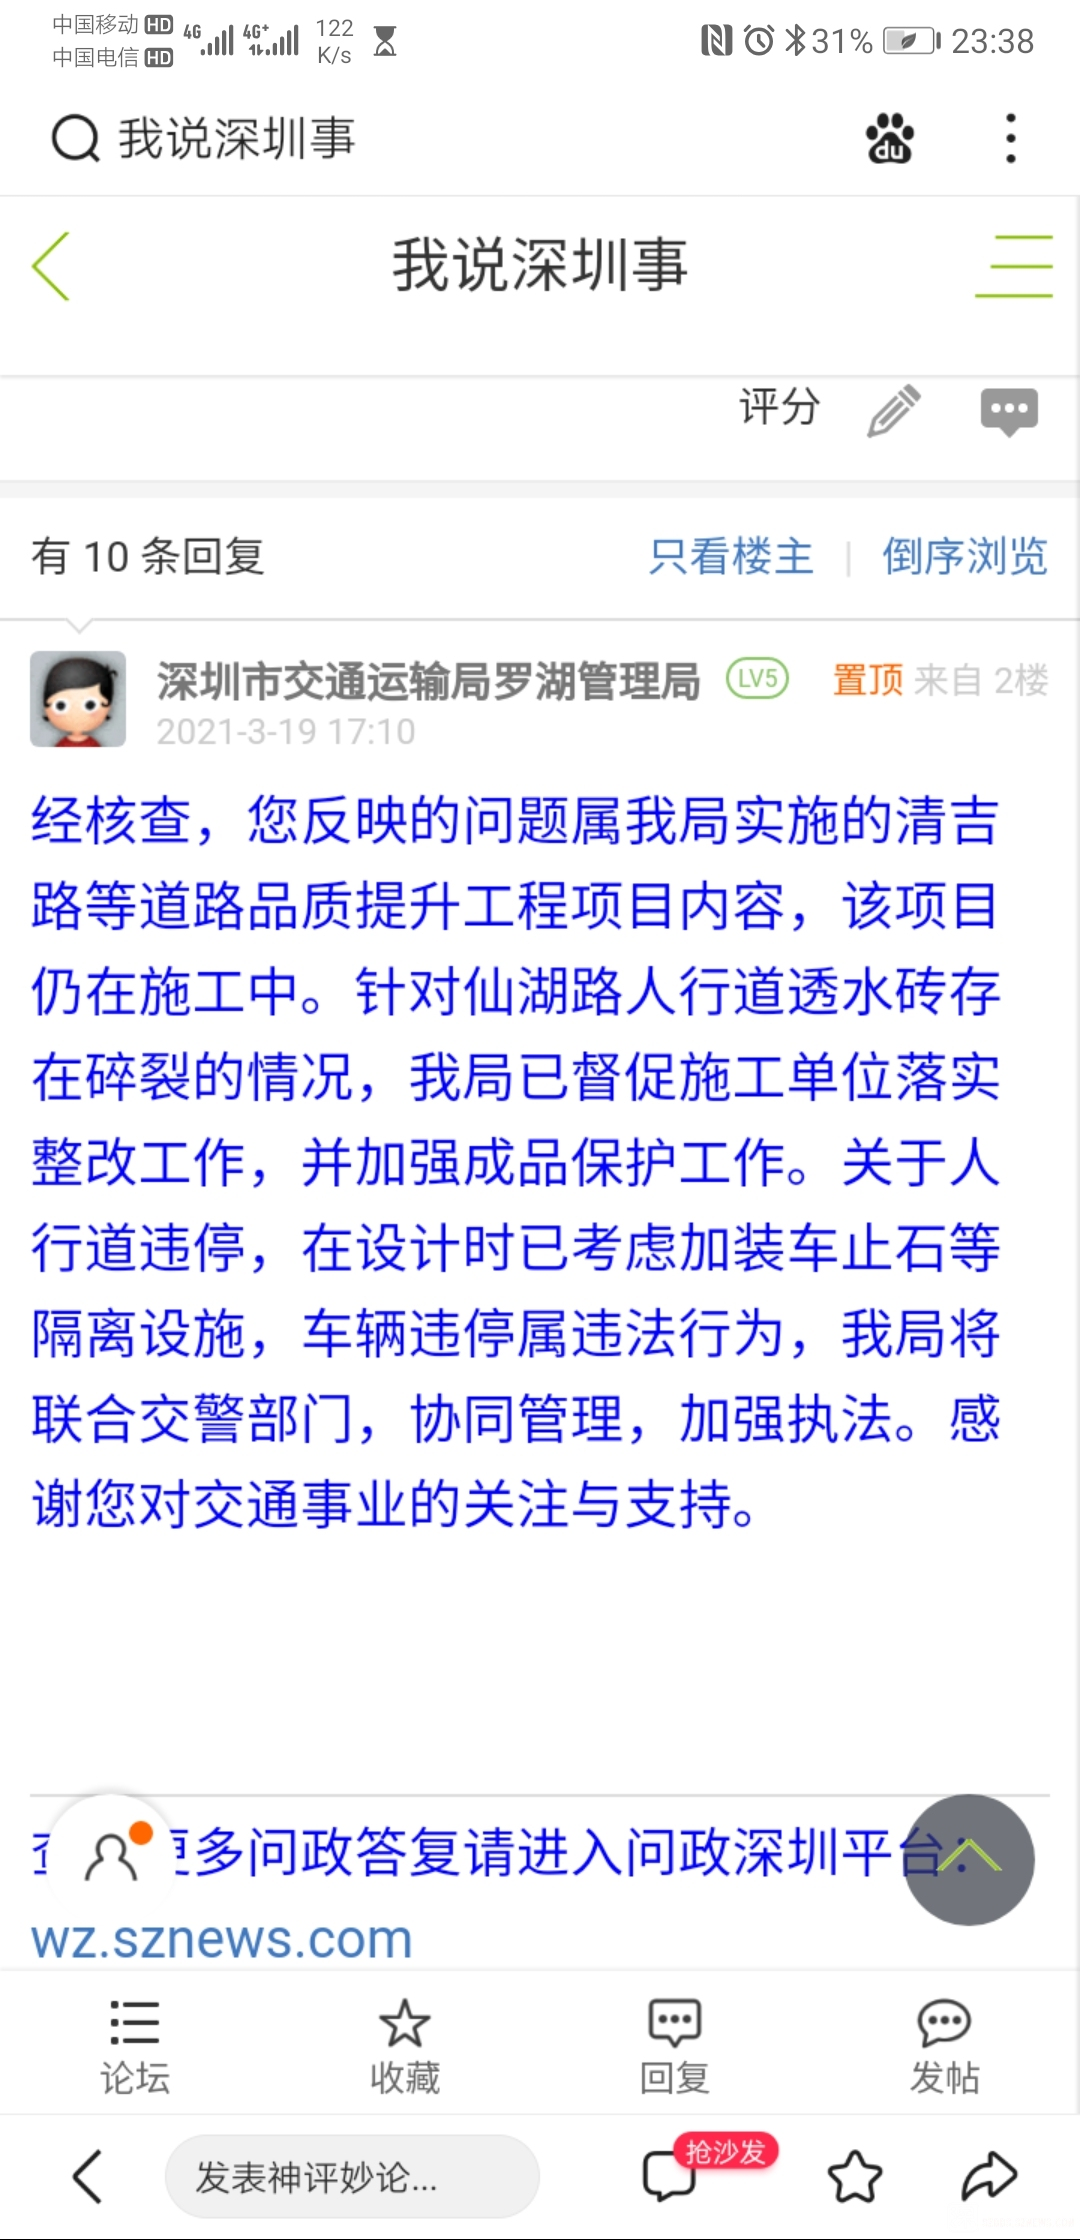 Screenshot_20210326_233844_com.baidu.searchbox.jpg